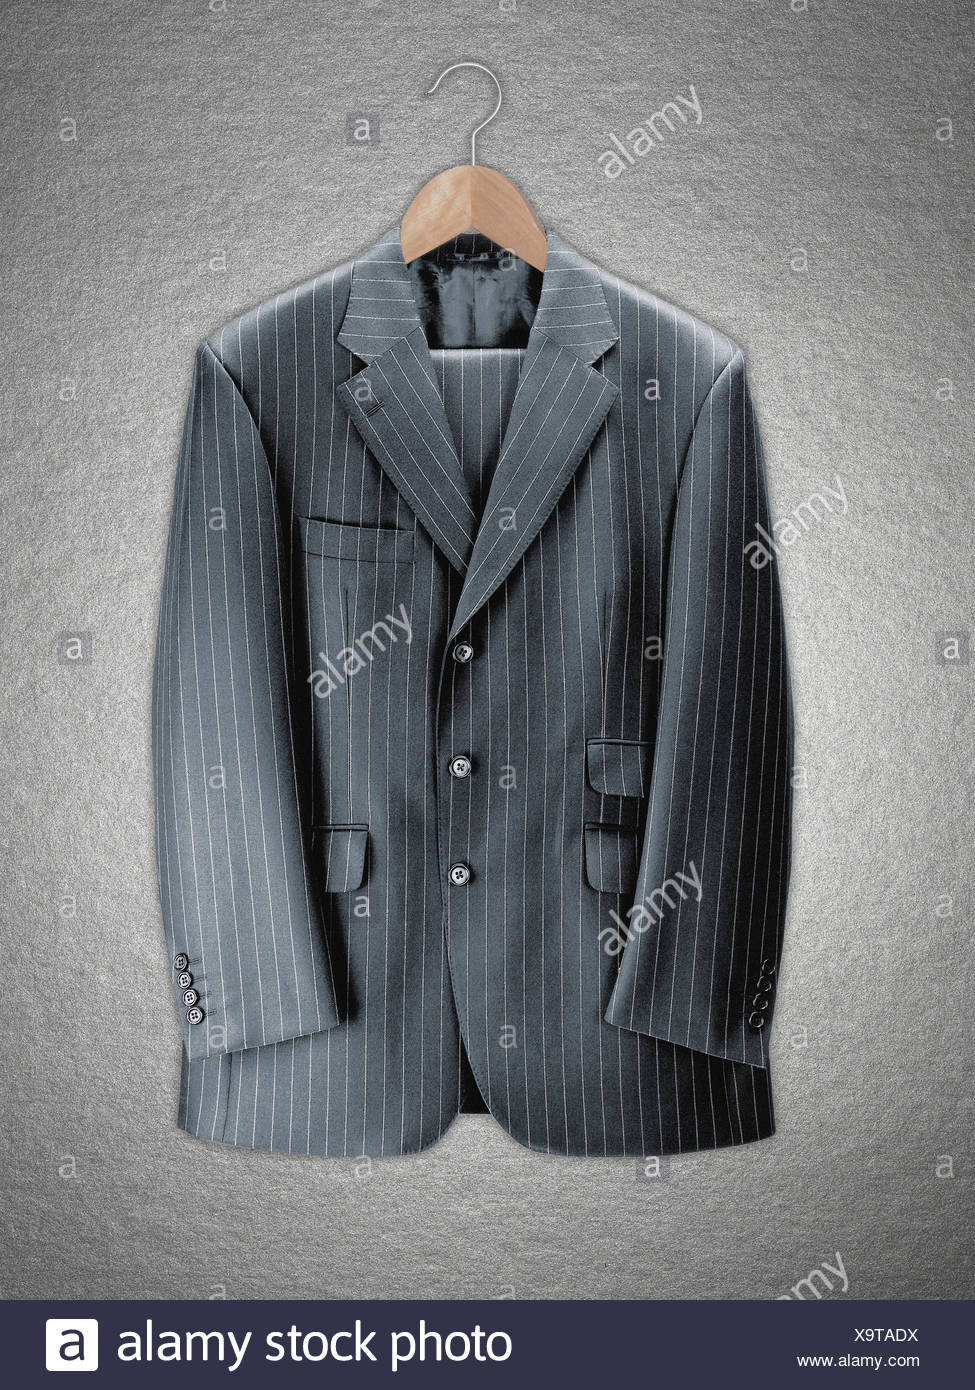 Business suit su appendiabiti Immagini Stock